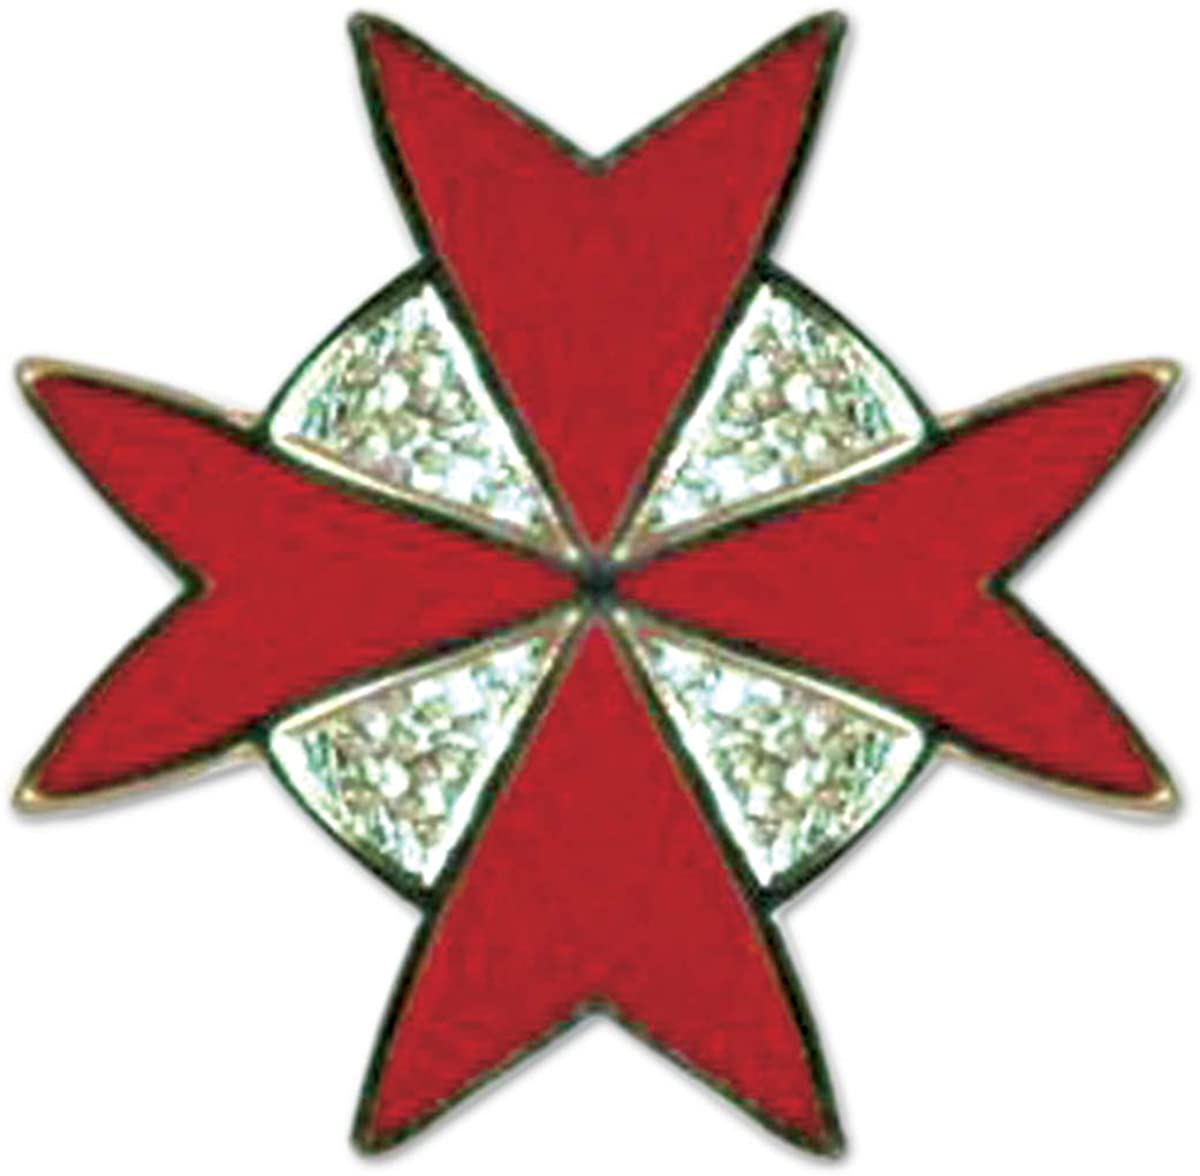 Maltese Cross Red Freemasonic Lapel Pin - SolomonsOrder